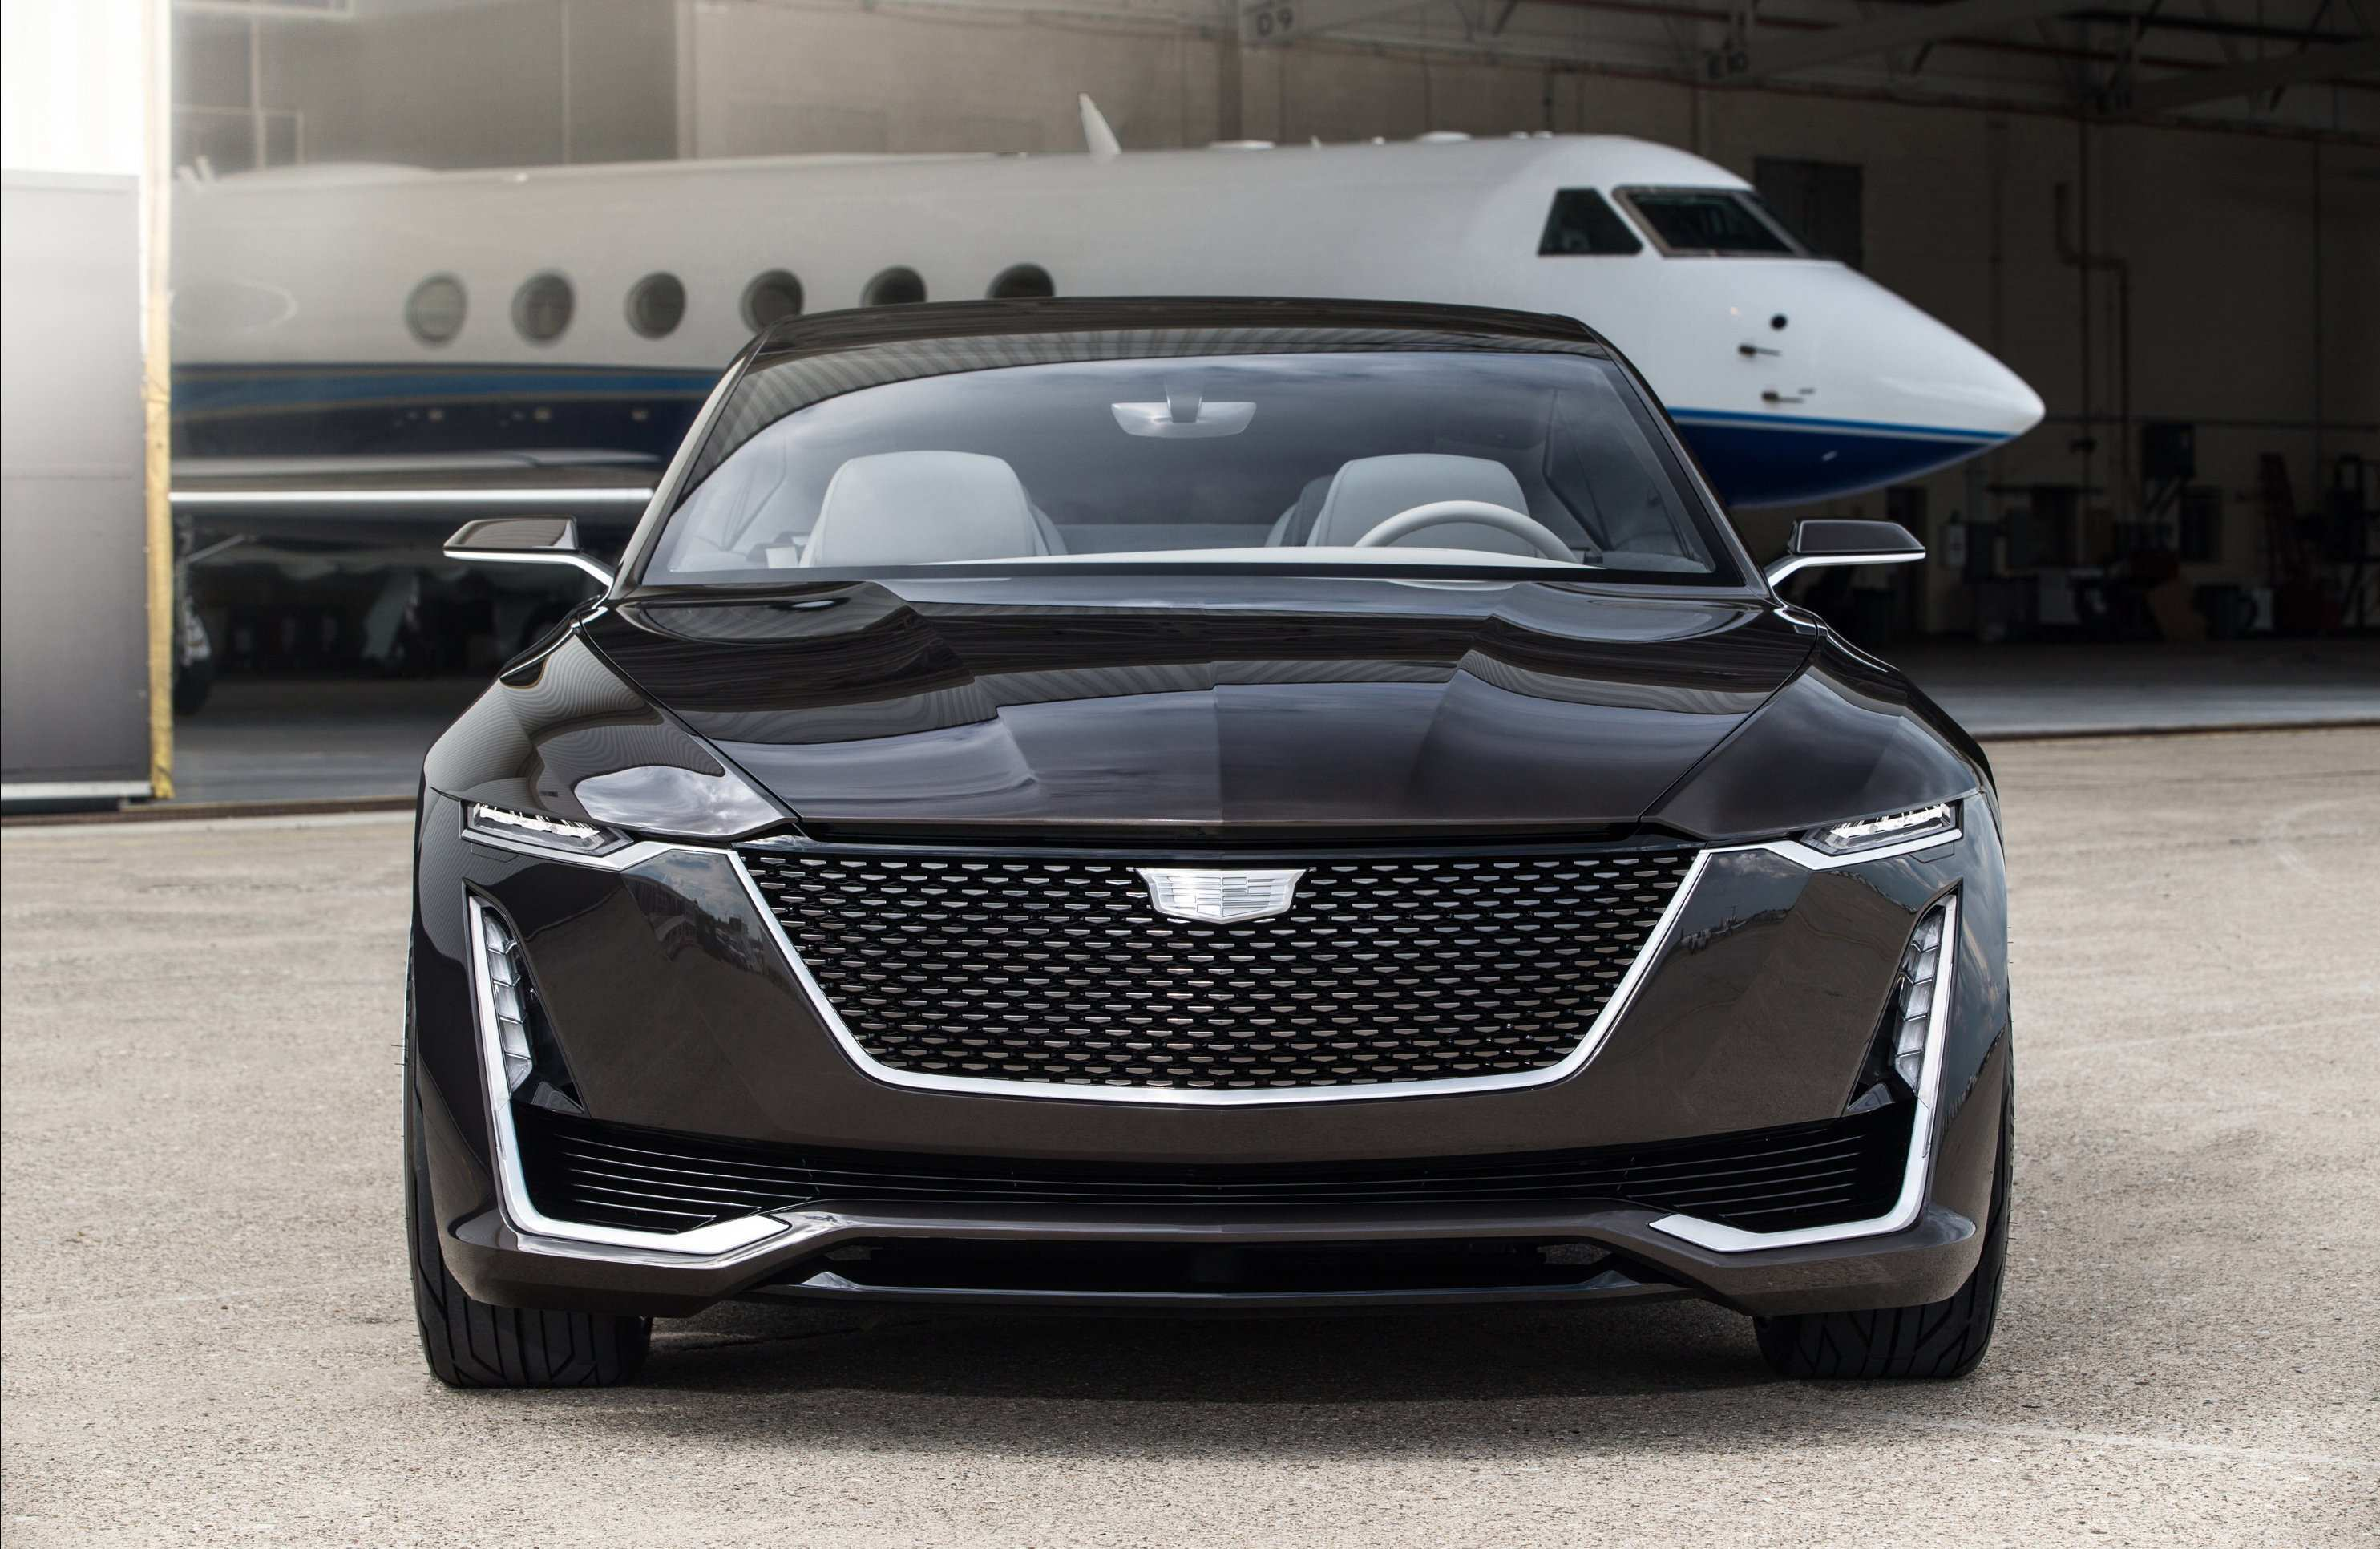 73 Gallery of Cadillac 2019 Ct5 Overview And Price Speed Test with Cadillac 2019 Ct5 Overview And Price